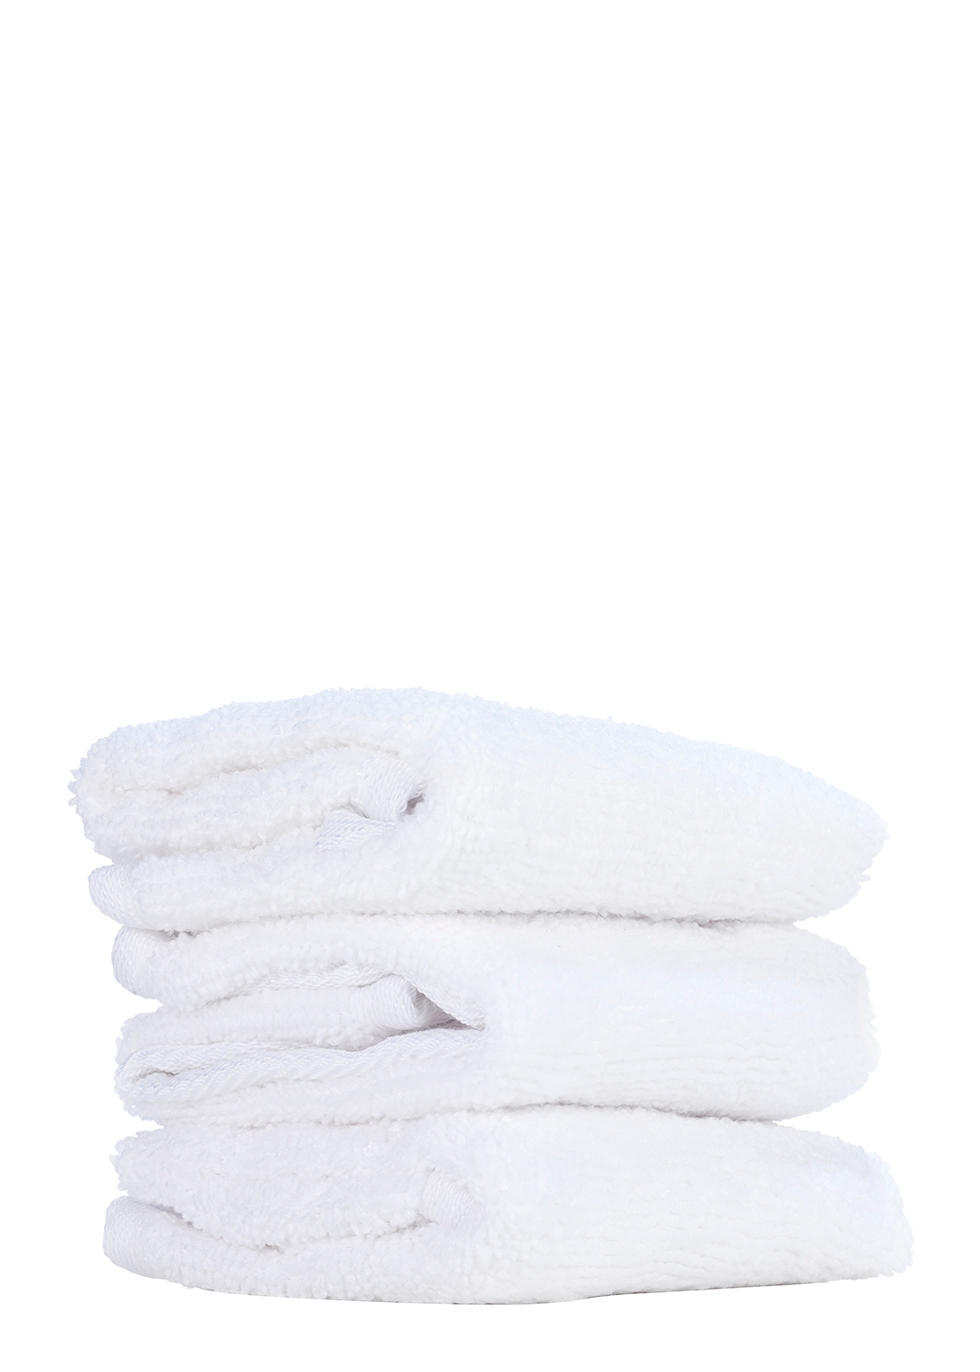 Professional Cleansing Cloths